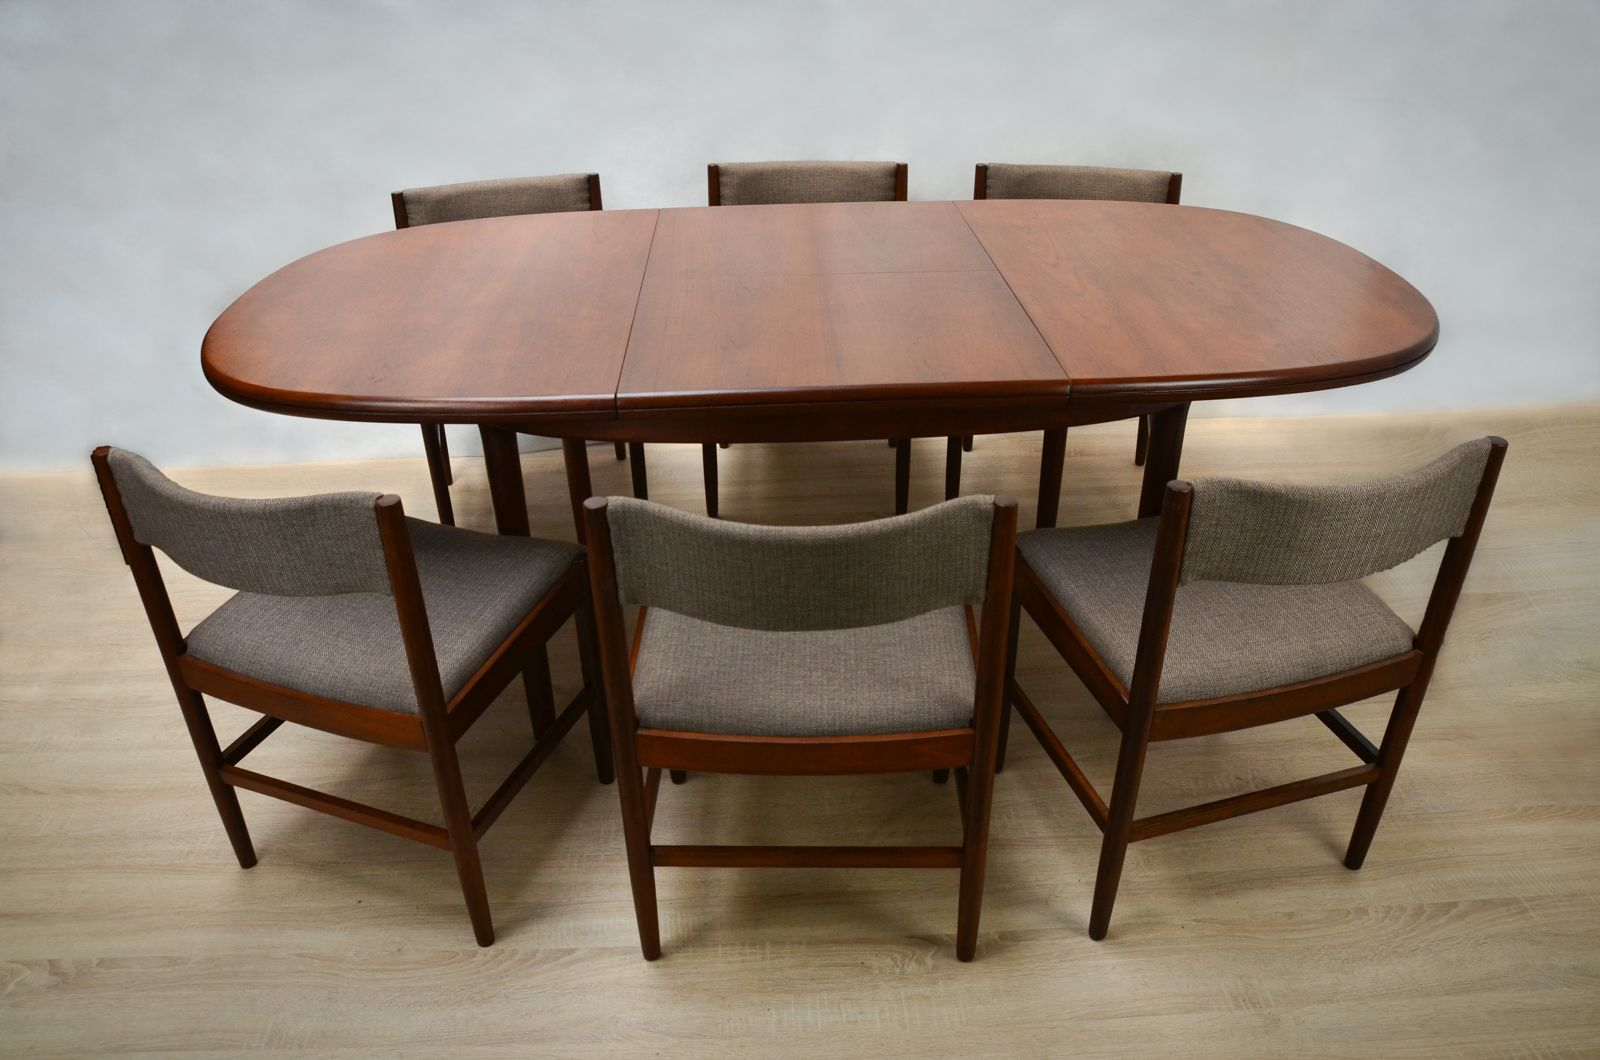 Danish Teak Dining Table with 6 Chairs 1960s Set of 7  : danish teak dining table with 6 chairs 1960s set of 7 1 from www.pamono.co.uk size 1600 x 1060 jpeg 1003kB